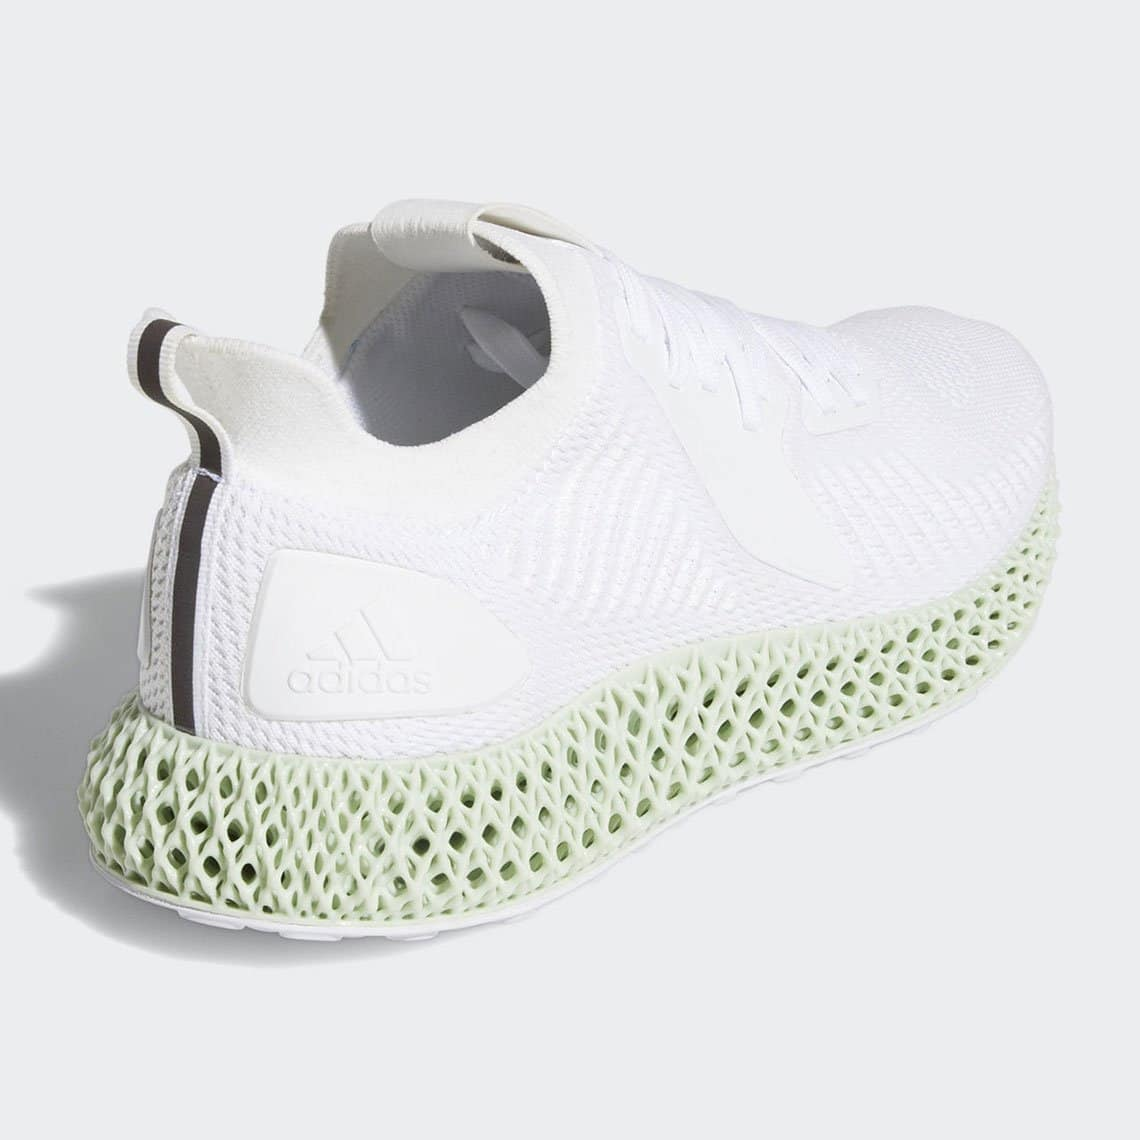 The new 3D printed sneakers from adidas